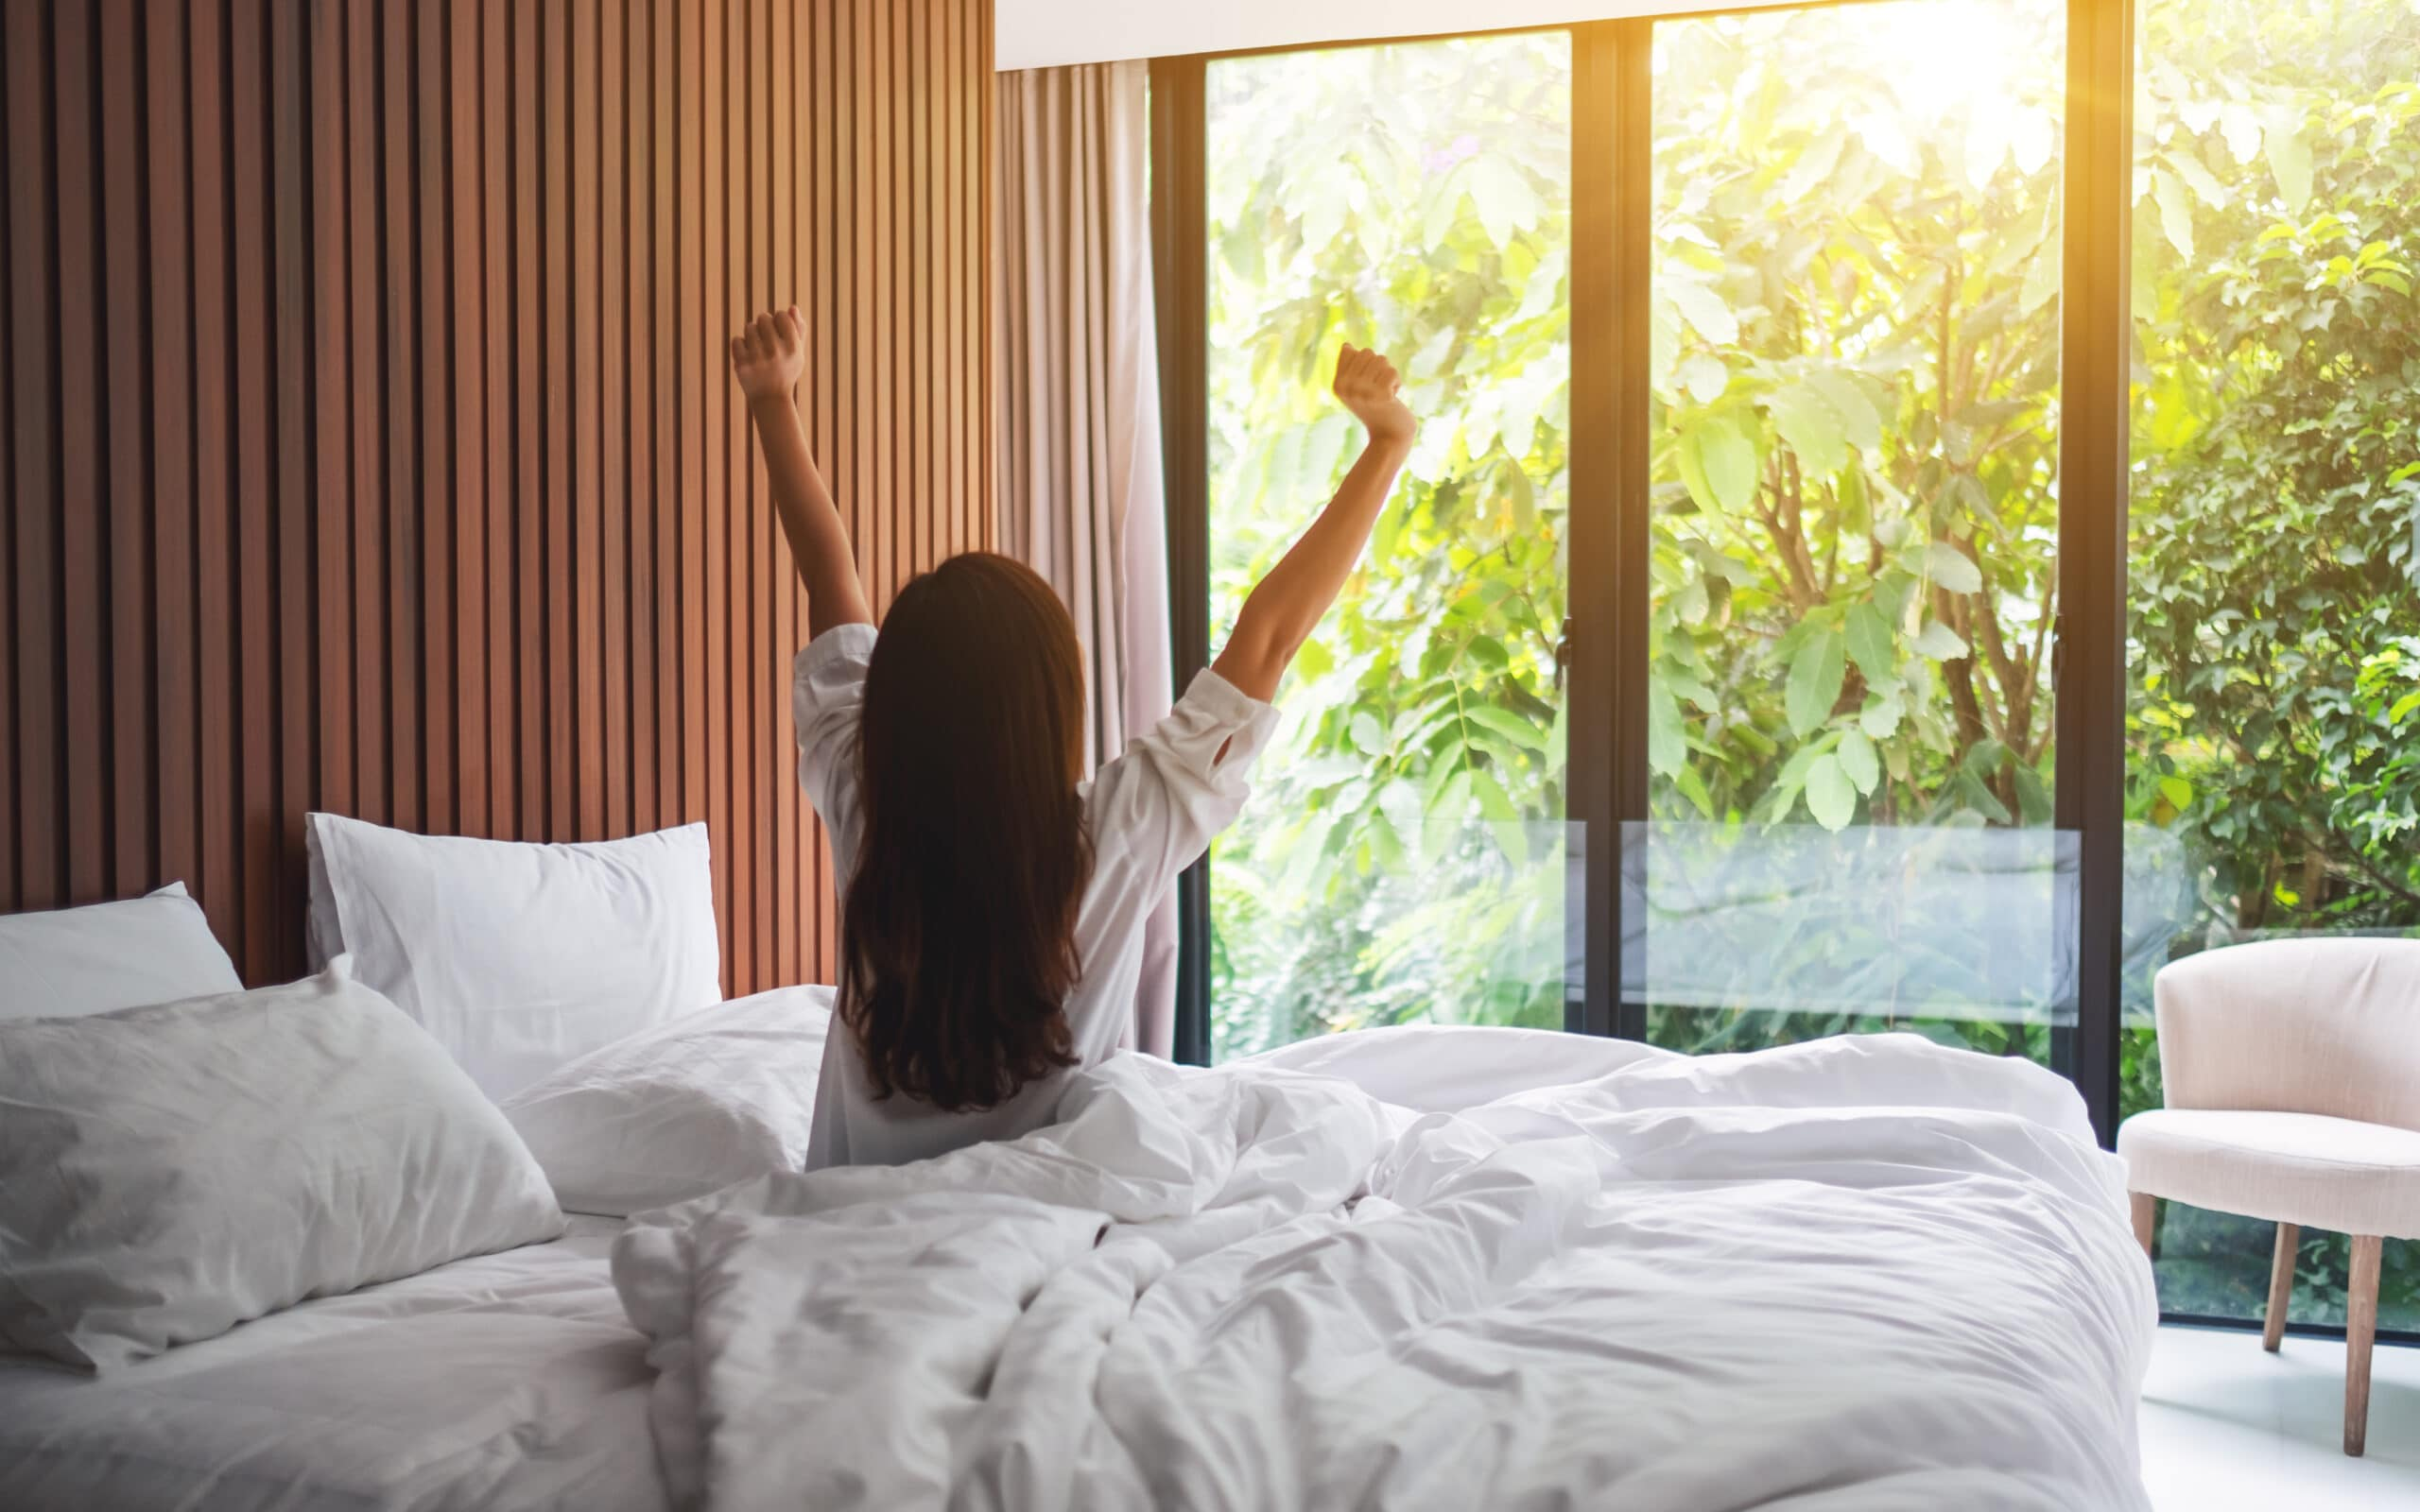 Rear view image of a woman do stretching after waking up in the morning , looking at a beautiful nature view outside bedroom window